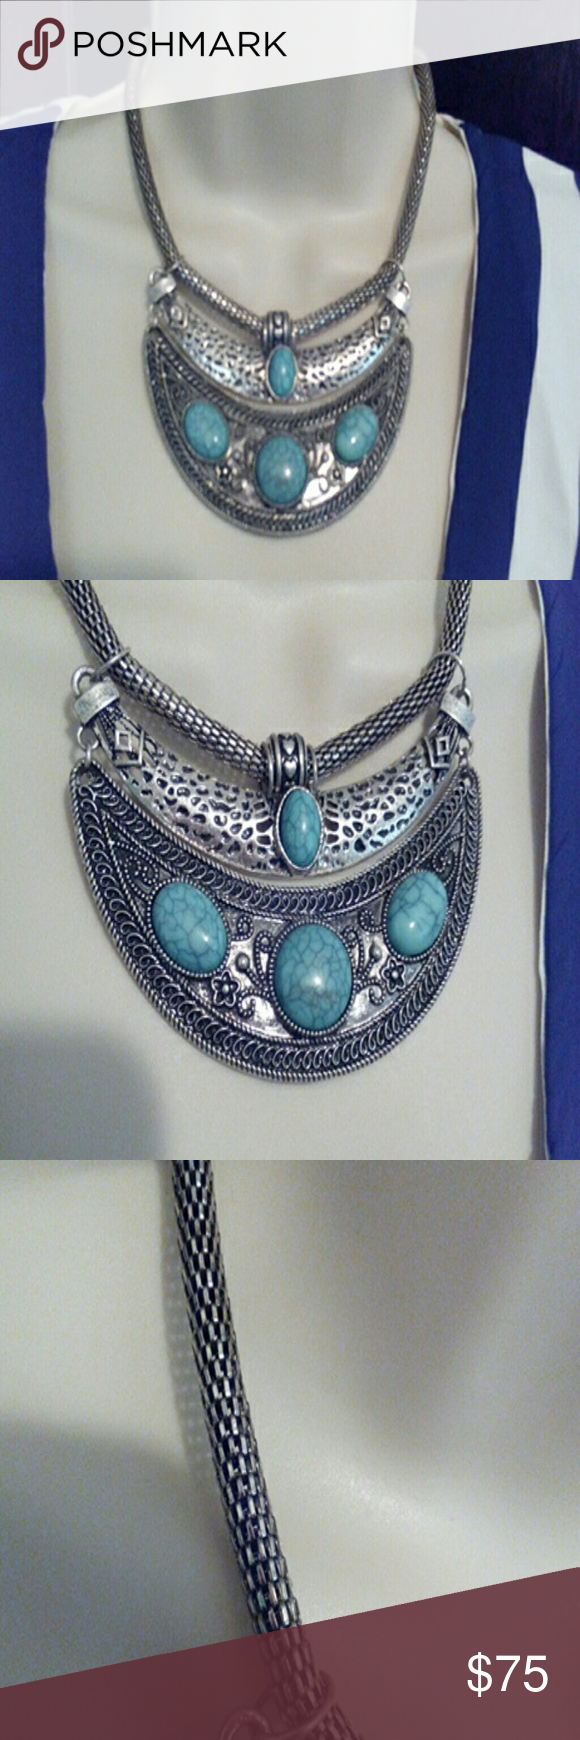 Turquoise Necklace From Nevada. Silver sculture This turquoise necklace has a neat snakeskin silver chain with two different bars of turquoise stones...this neck is a real gem unbranded Jewelry Necklaces